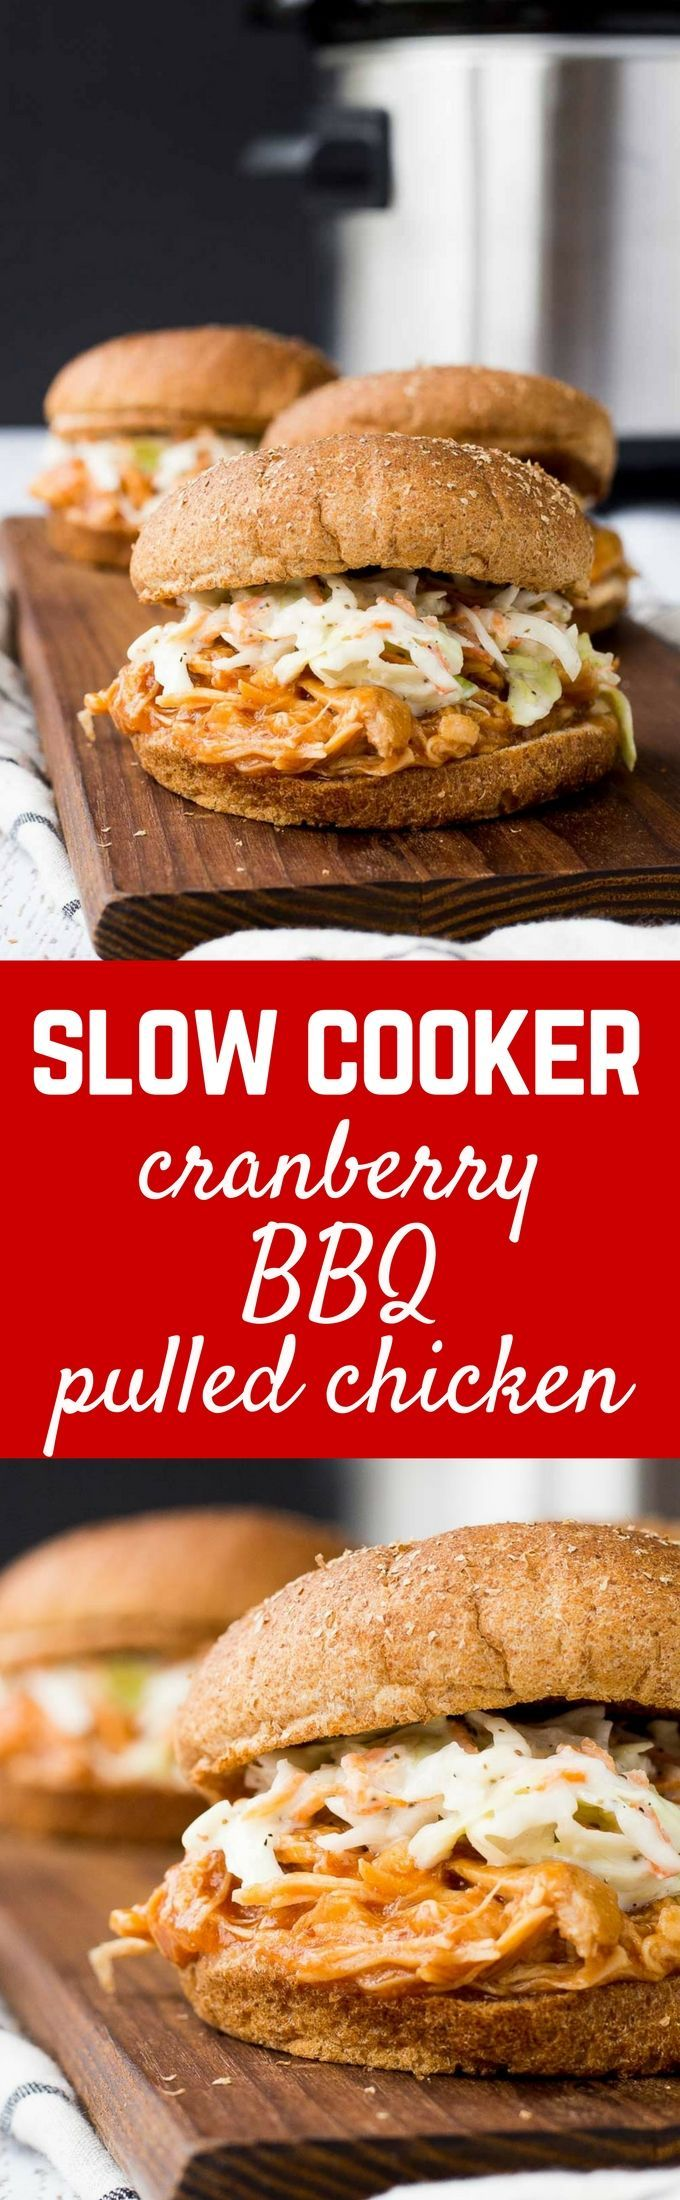 Slow Cooker Barbecue Pulled Chicken Cranberry Sherry Bbq Sauce Recipe With Images Recipes Chicken Slow Cooker Recipes Slow Cooker Recipes